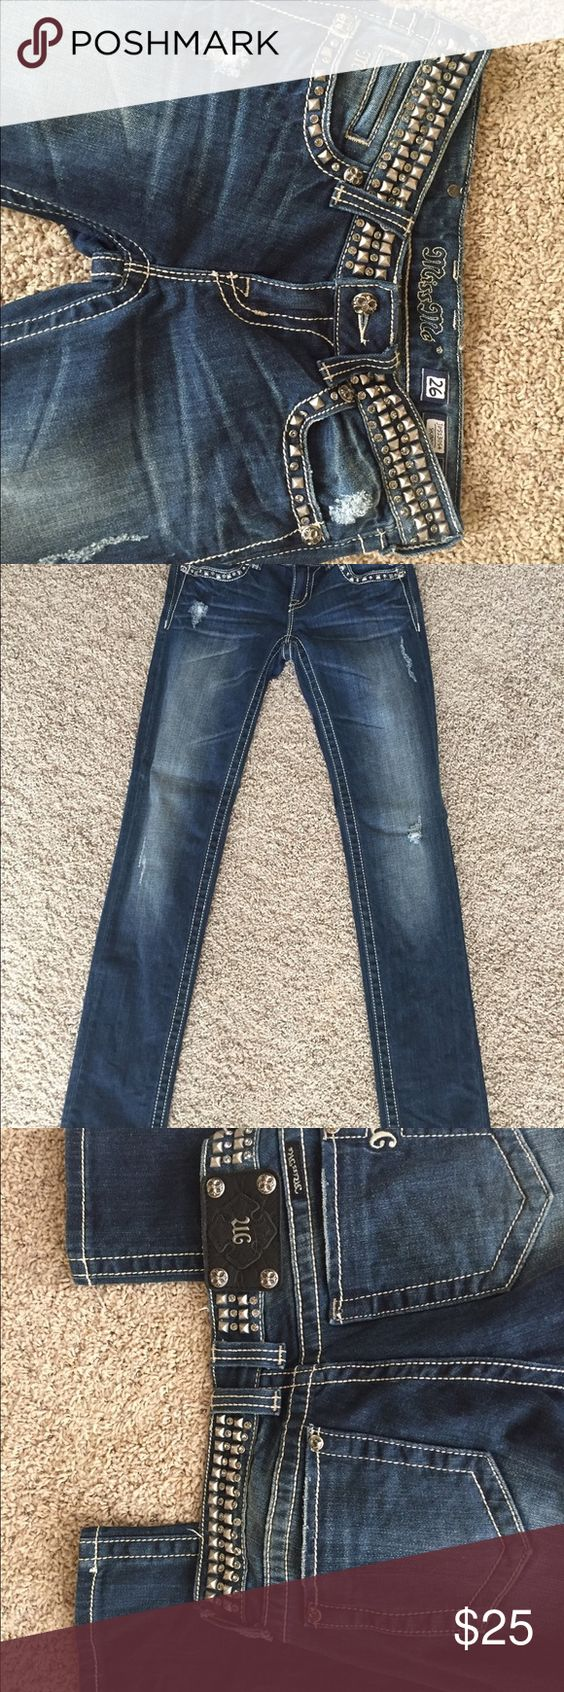 Miss me jeans size 26 Worn only a few times with all jewels and stones.These are size 26 Missme skinny jeans. Like New Miss Me Jeans Skinny